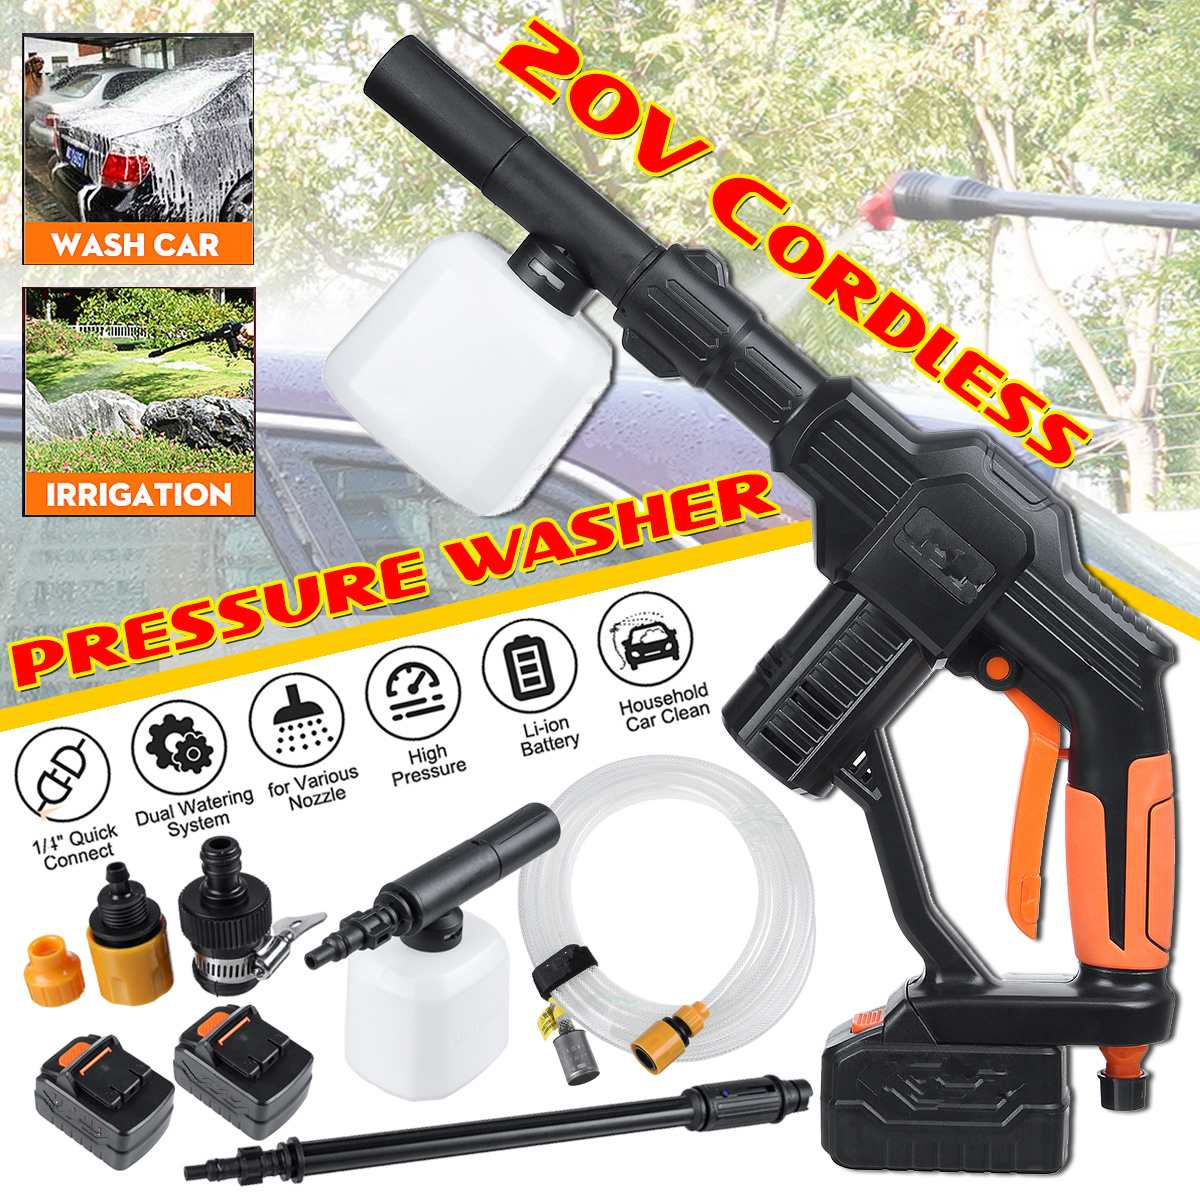 "21V Wireless High Pressure Cleaner Universal 1/4"" Fitting Cordless Portable Pressure Cleaner for Car Cleaning